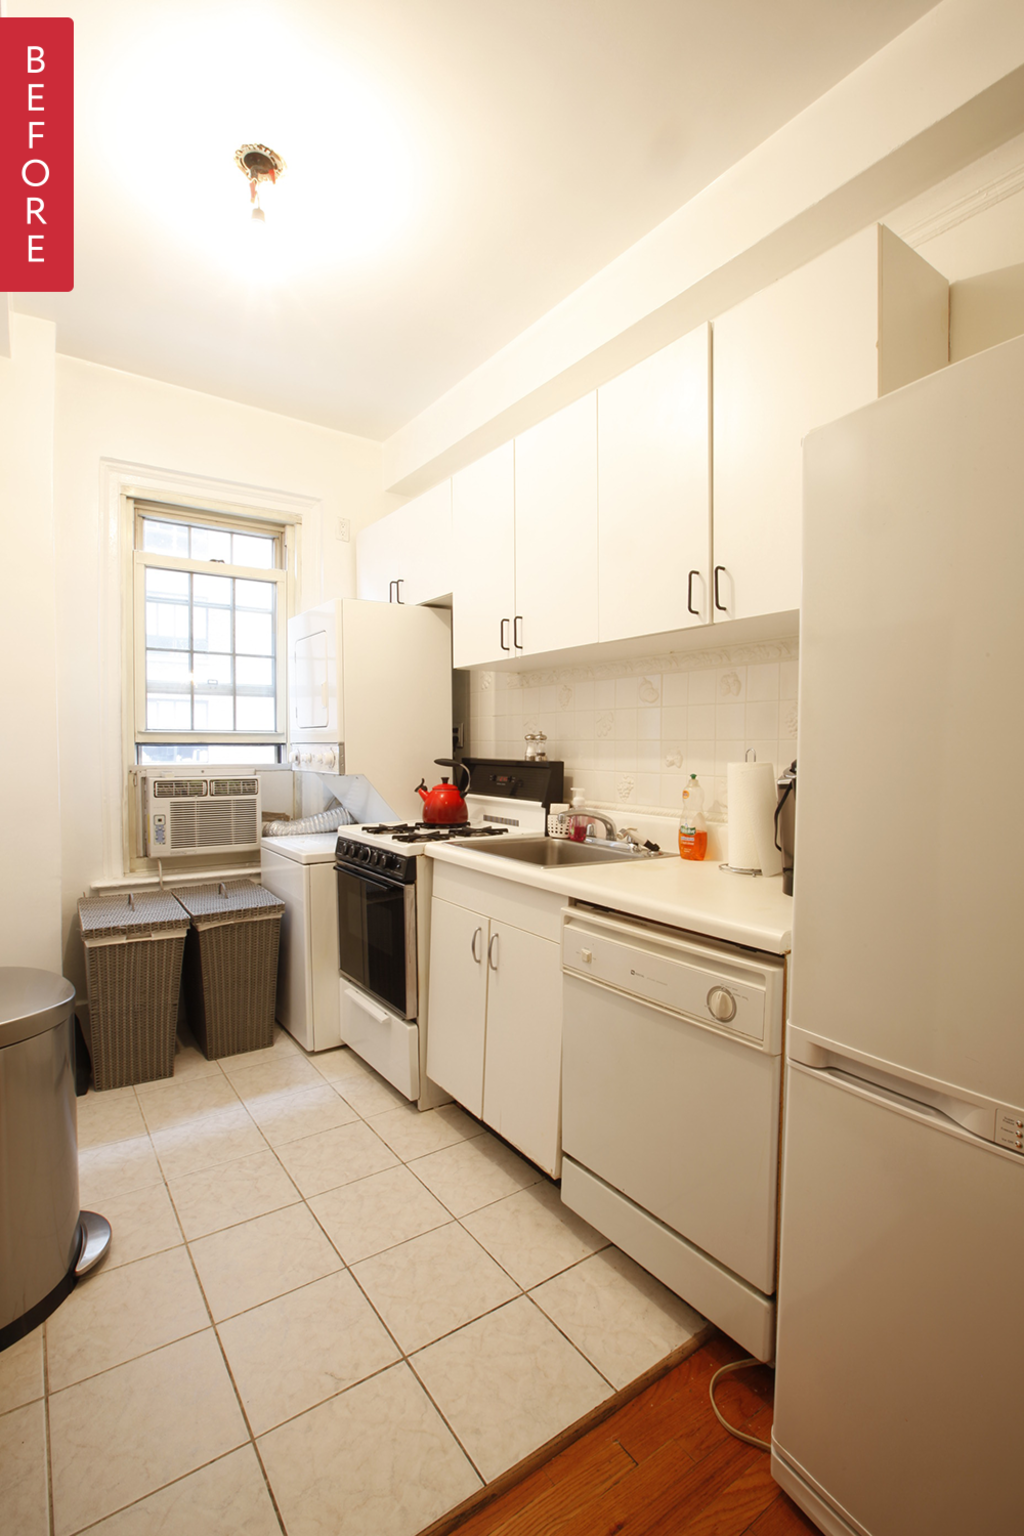 Before & After: A Stylish Update for a Drab West Village Kitchen